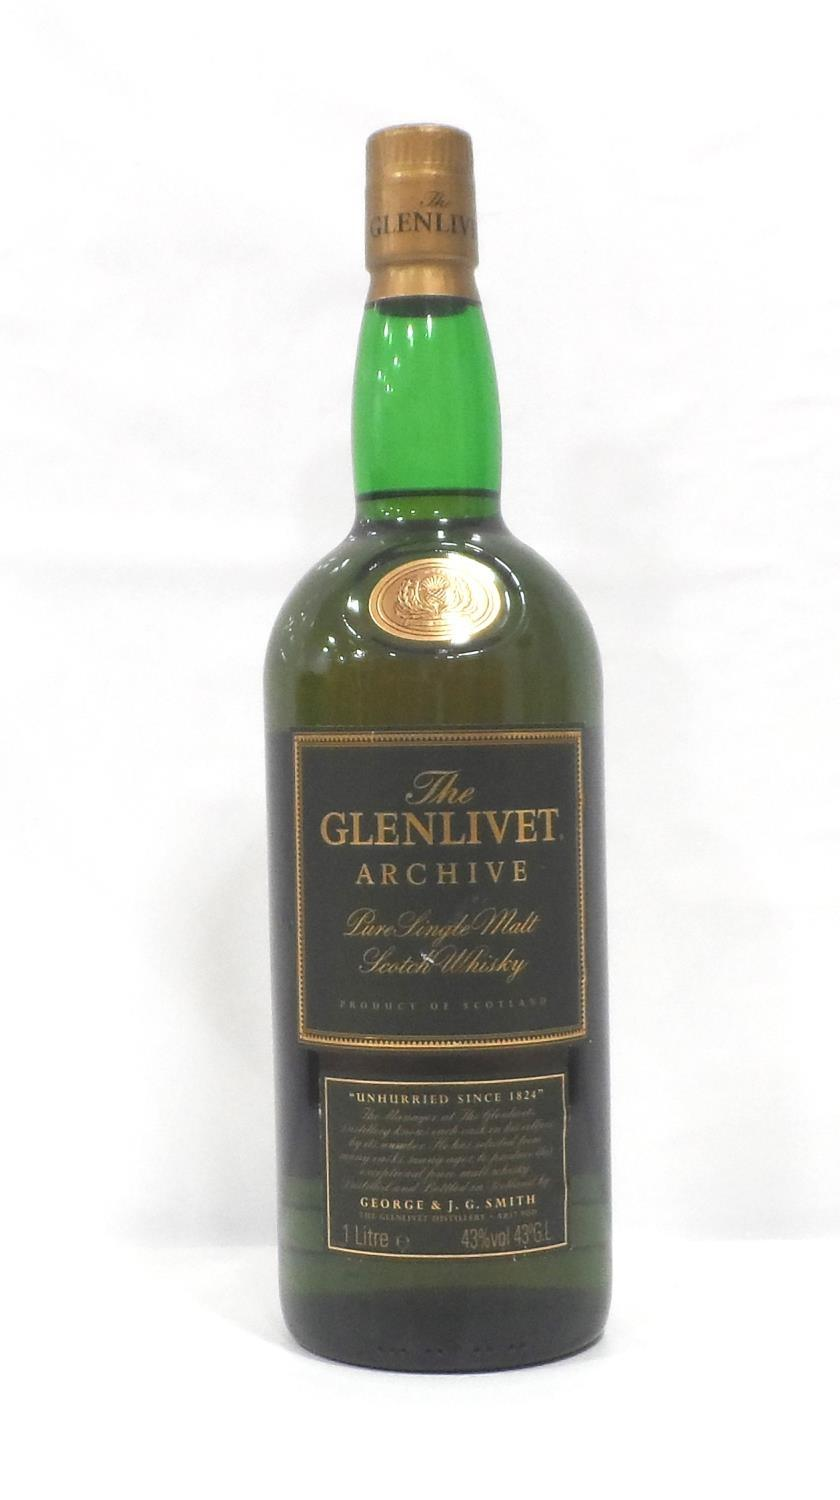 """Lot 40 - GLENLIVET ARCHIVE 15YO Another whisky with """"The"""" definitive article...The Glenlivet Archive 15"""